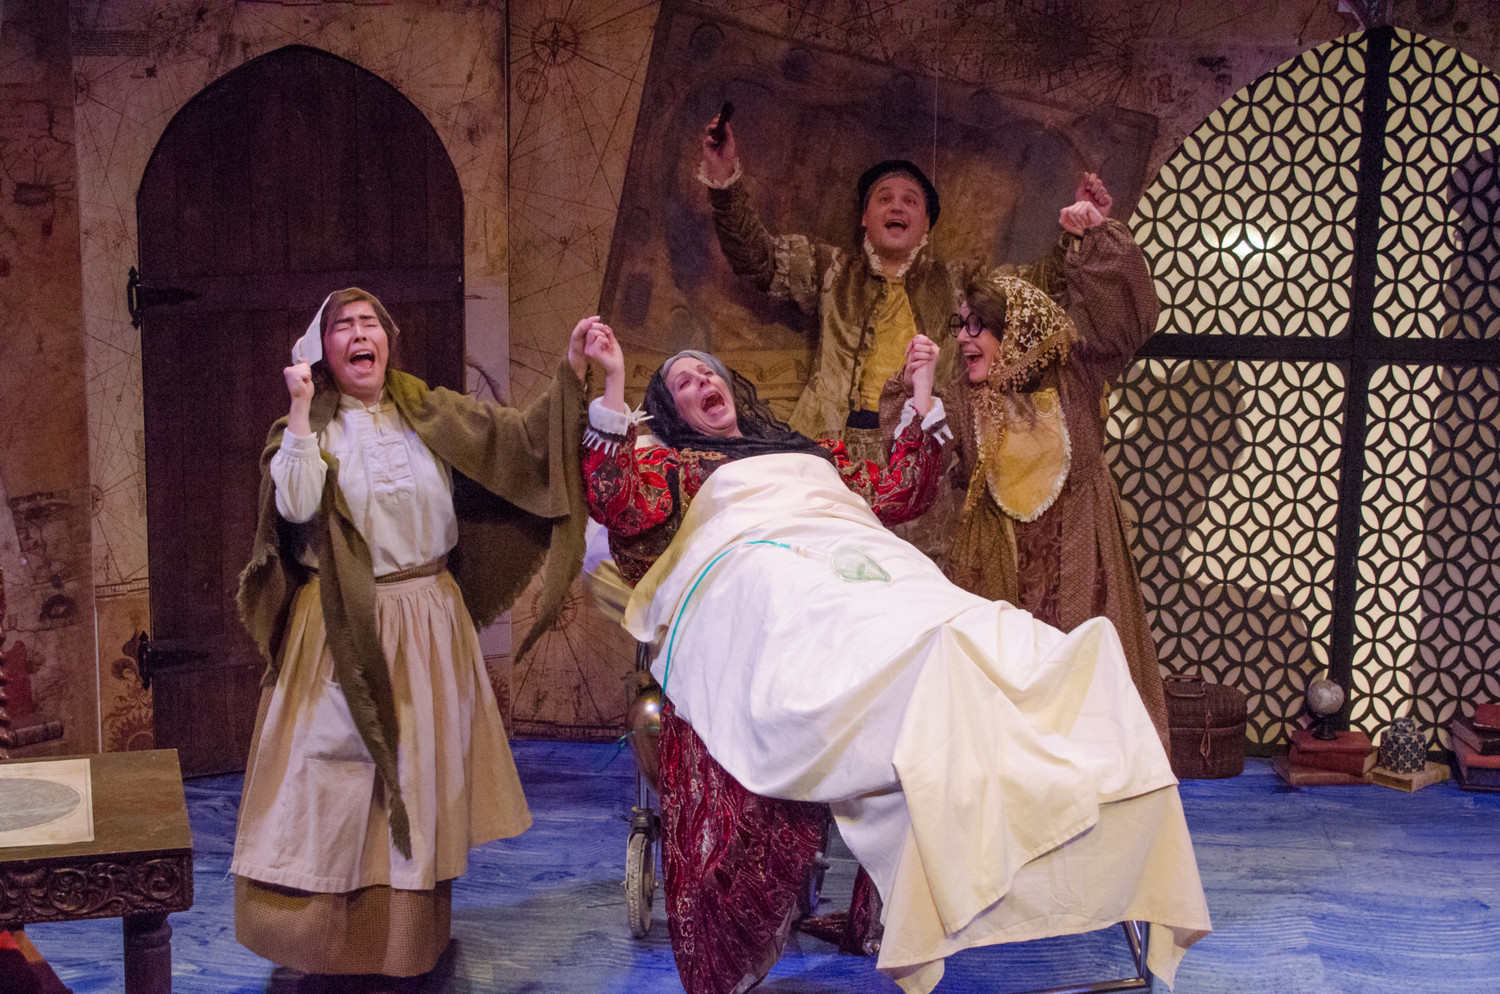 BWW Review: THE HUNCHBACK OF SEVILLE colonizes the Alley at Mildred's Umbrella